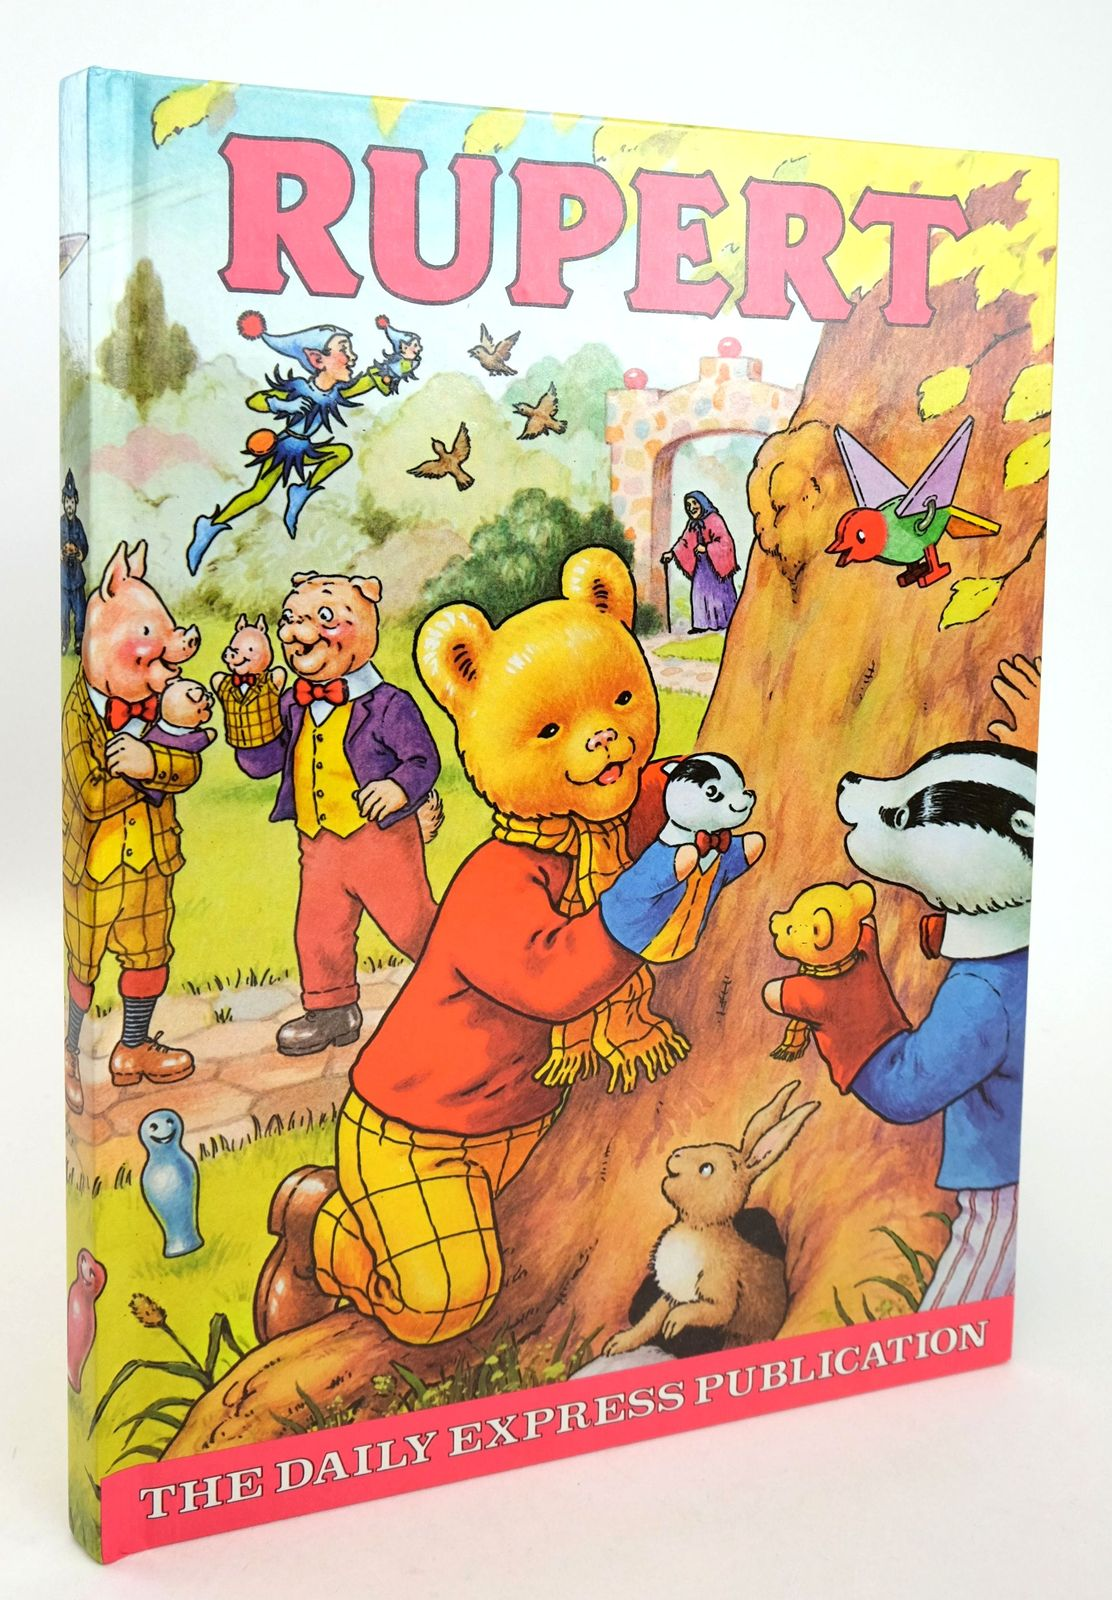 Photo of RUPERT ANNUAL 1980 illustrated by Harrold, John published by Express Newspapers Ltd. (STOCK CODE: 1819254)  for sale by Stella & Rose's Books